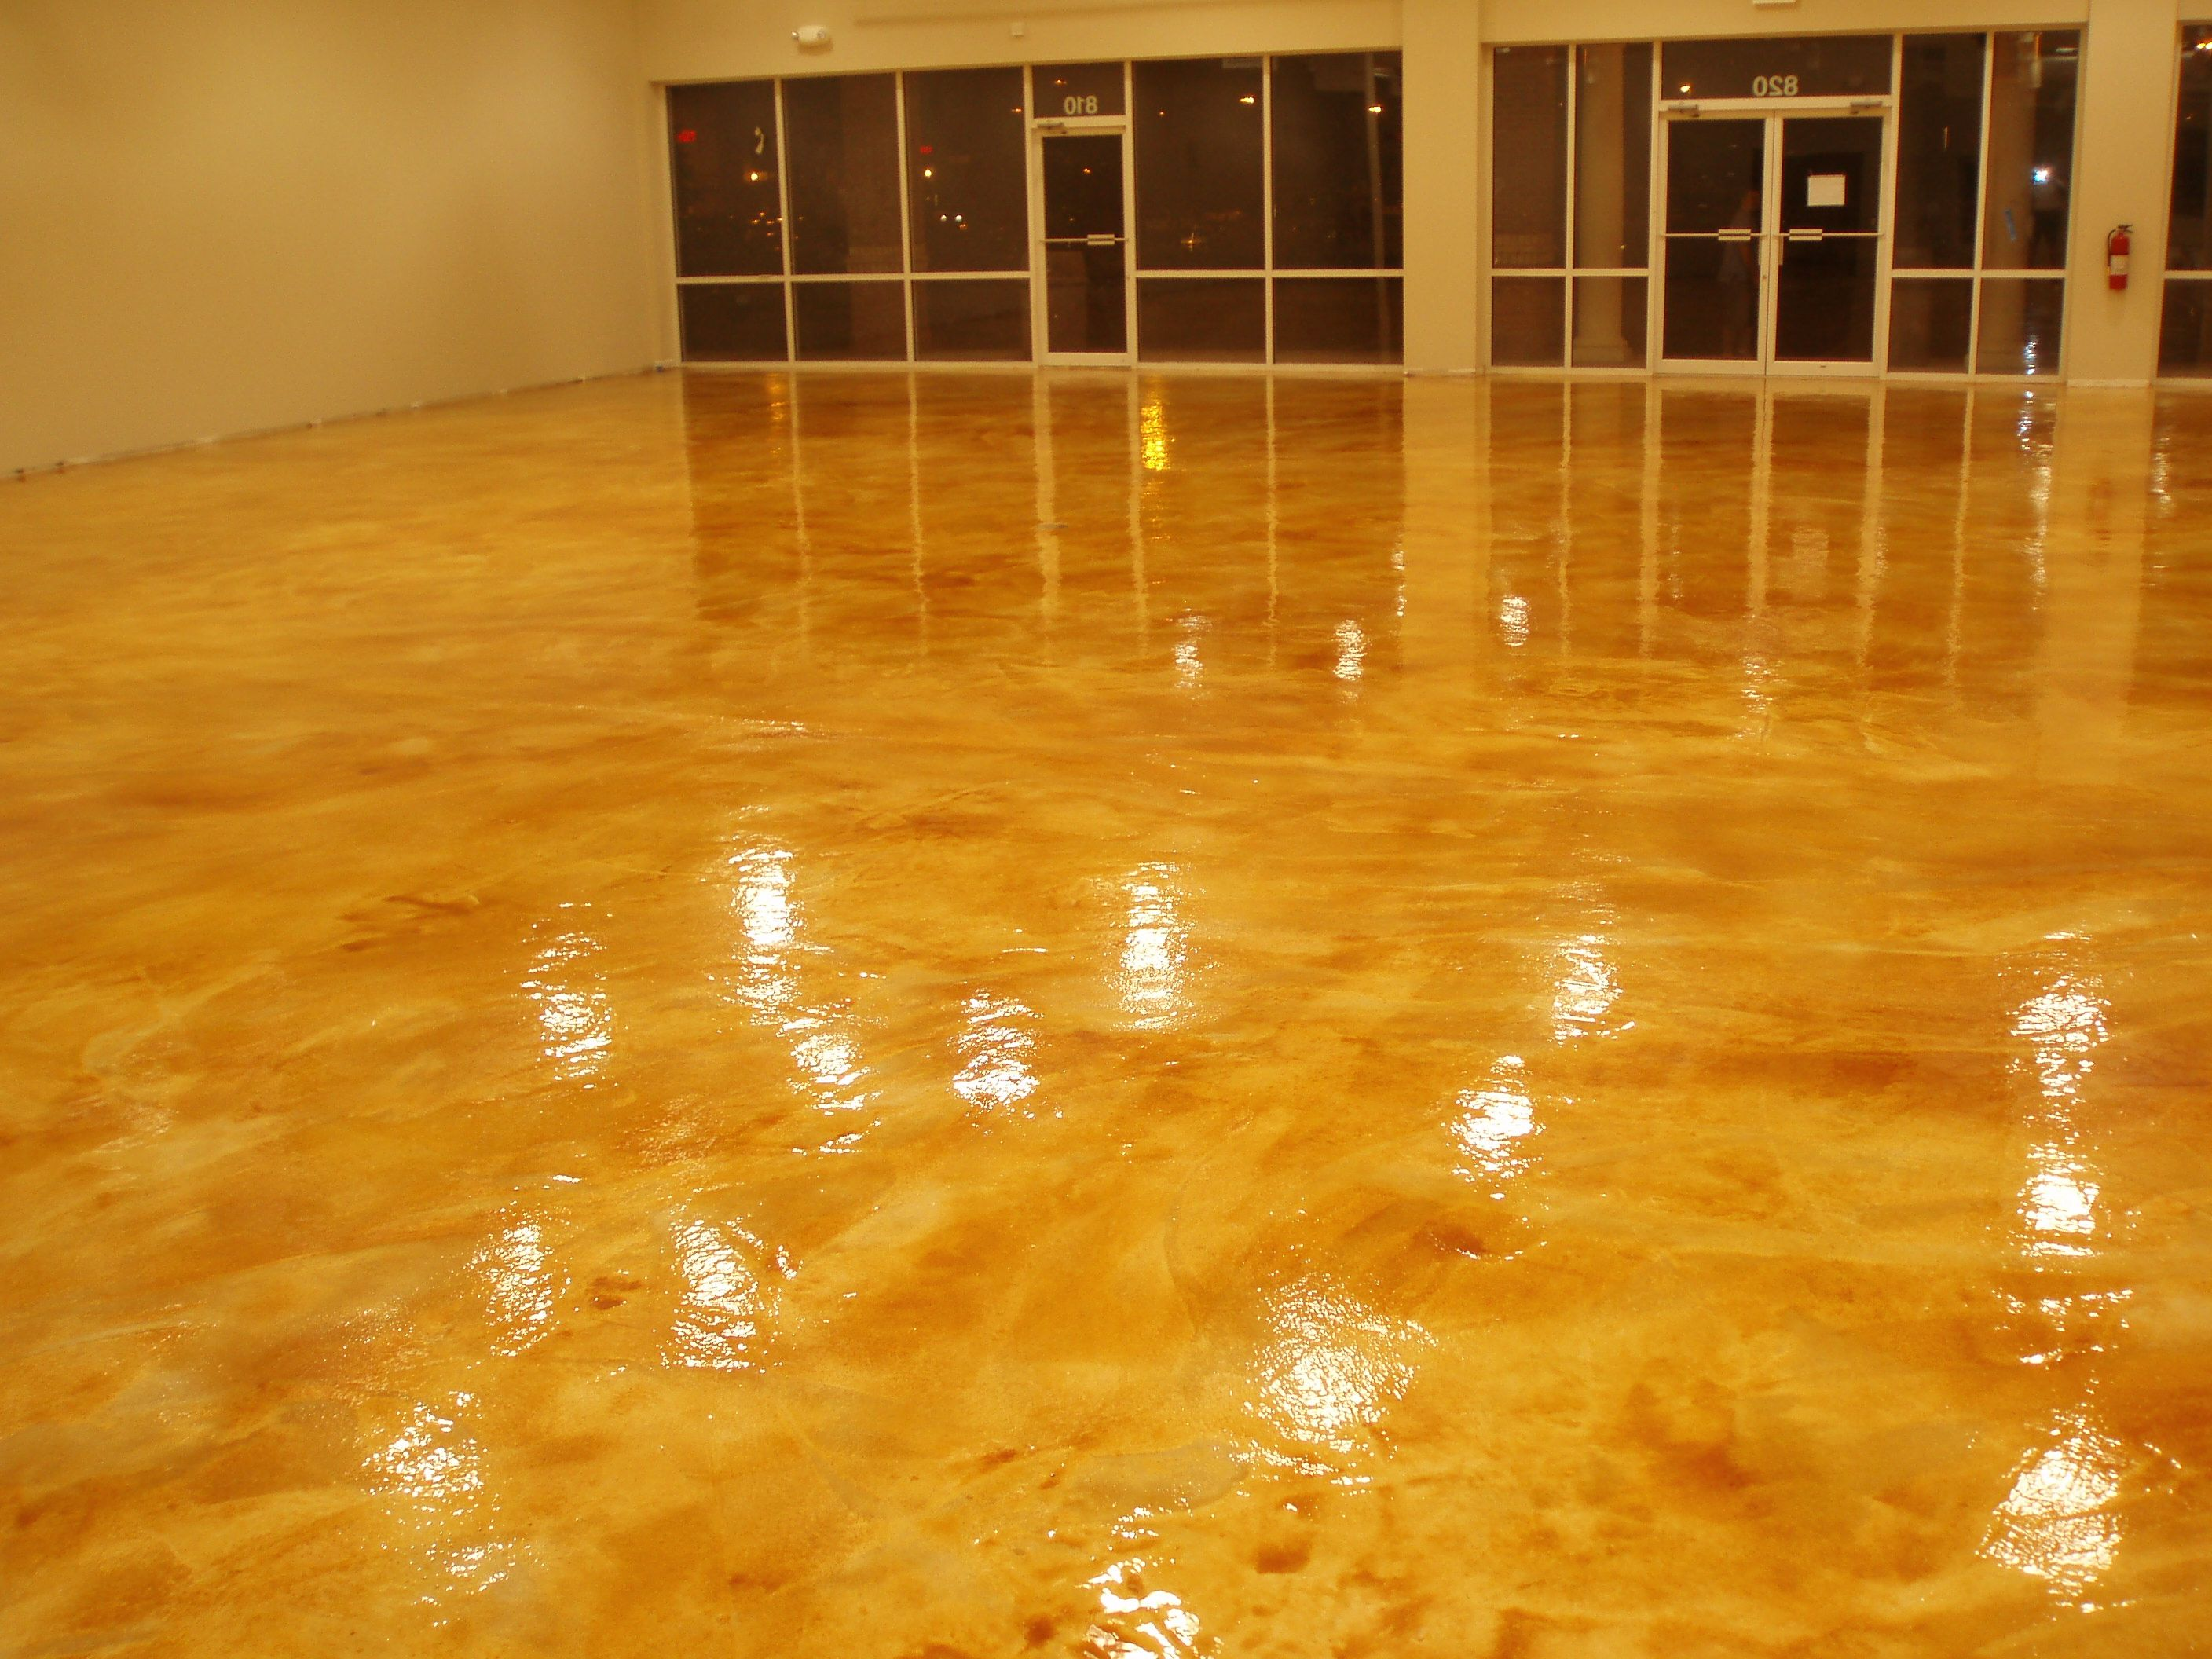 Concrete Floor Design Ideas ad indoor outdoor floor design ideas 15 Awesome Glossy Yellow Painting With Are Painted Concrete Floors Durable Design